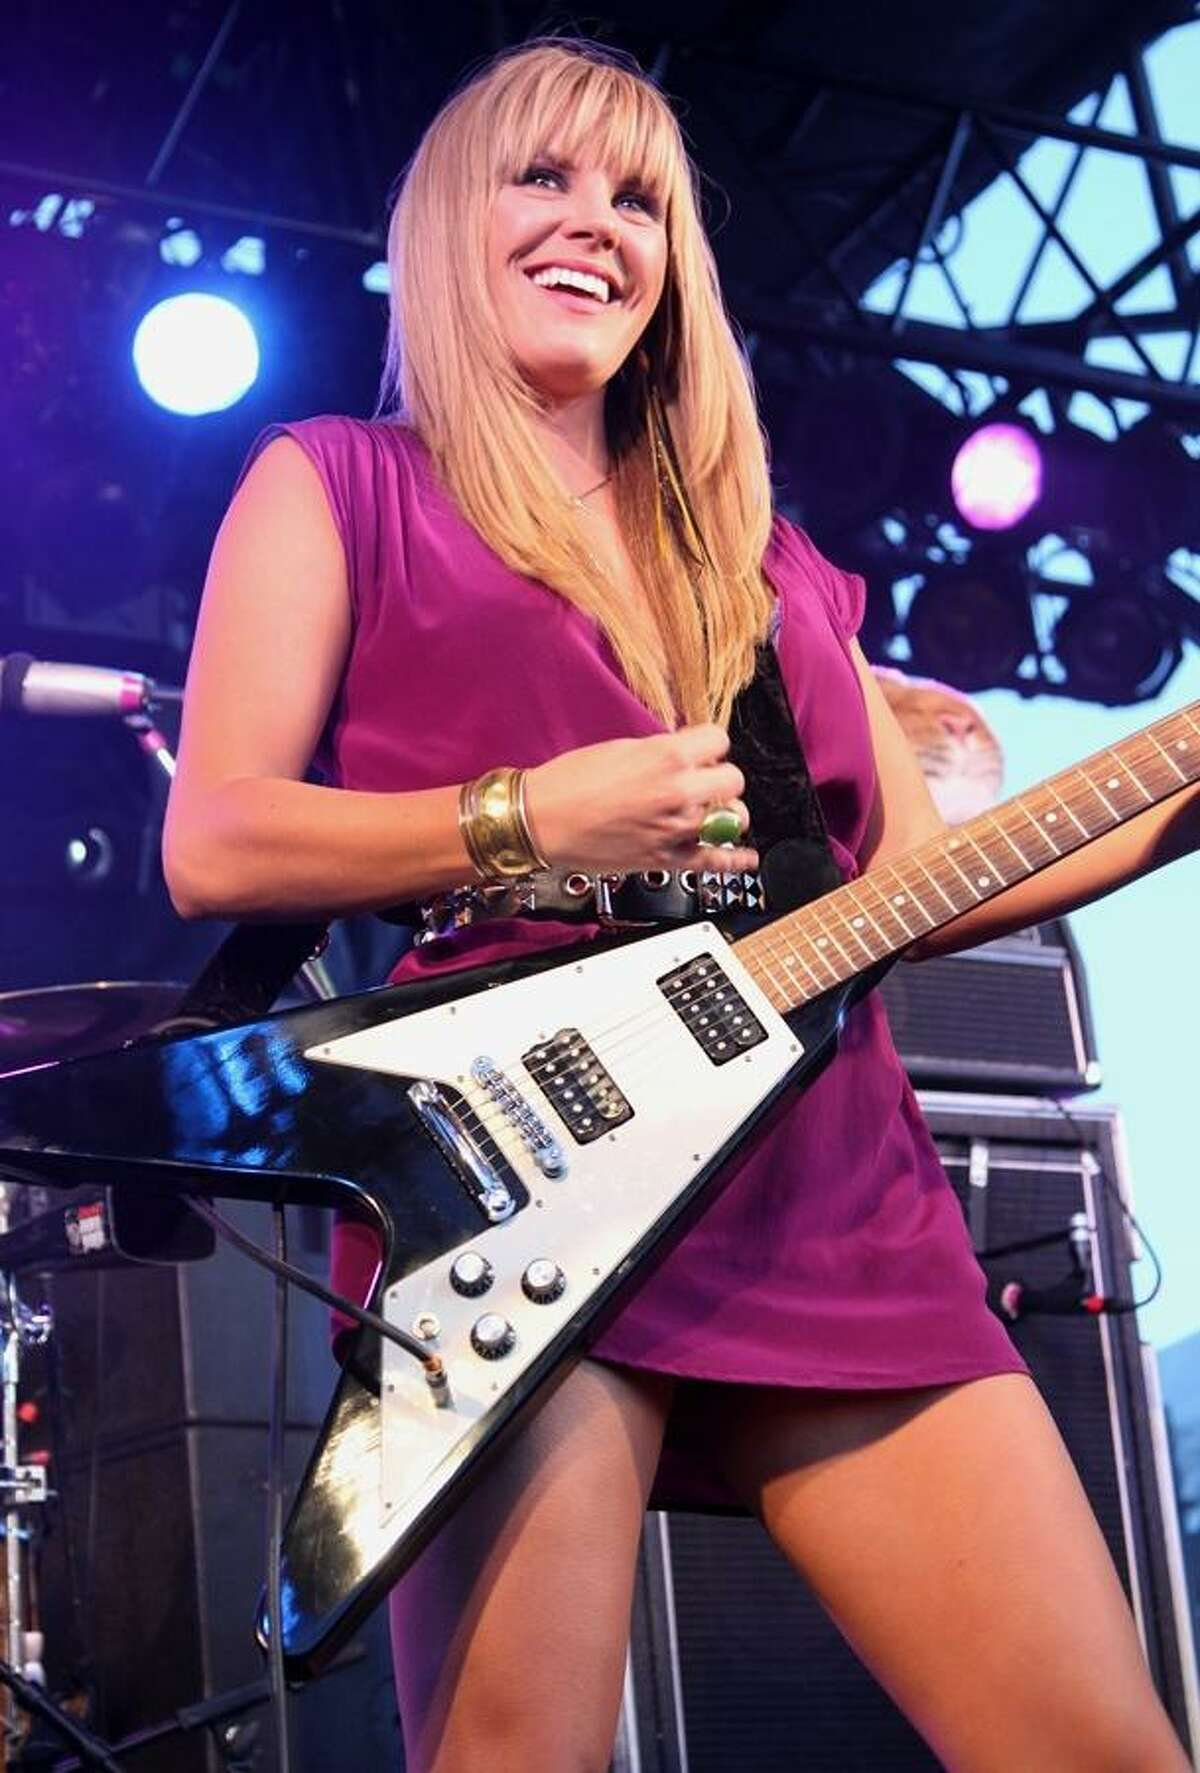 """Musician Grace Potter of Grace Potter and the Nocturnals is shown performing on stage during a """"live"""" concert appearance."""